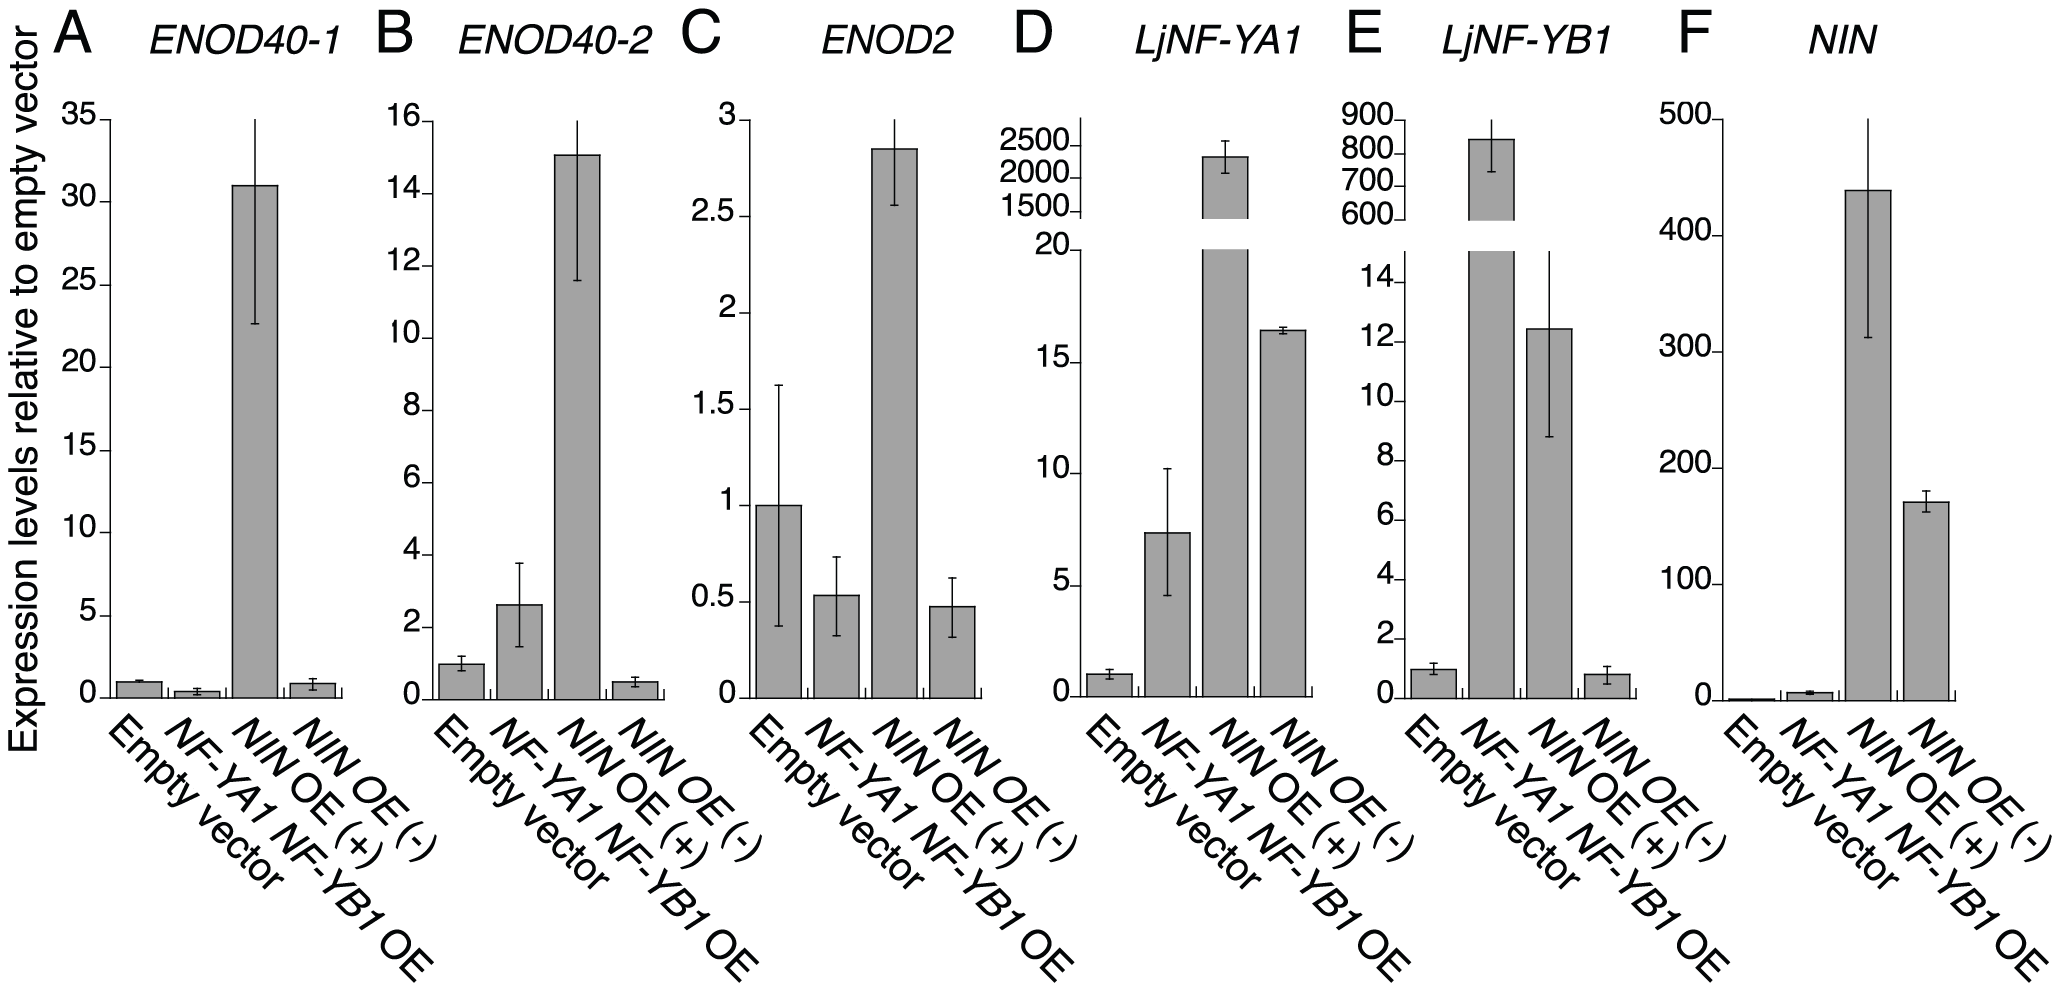 RT–PCR analysis of the expression of early nodulin genes and <i>LjNF-Y</i> subunit genes.